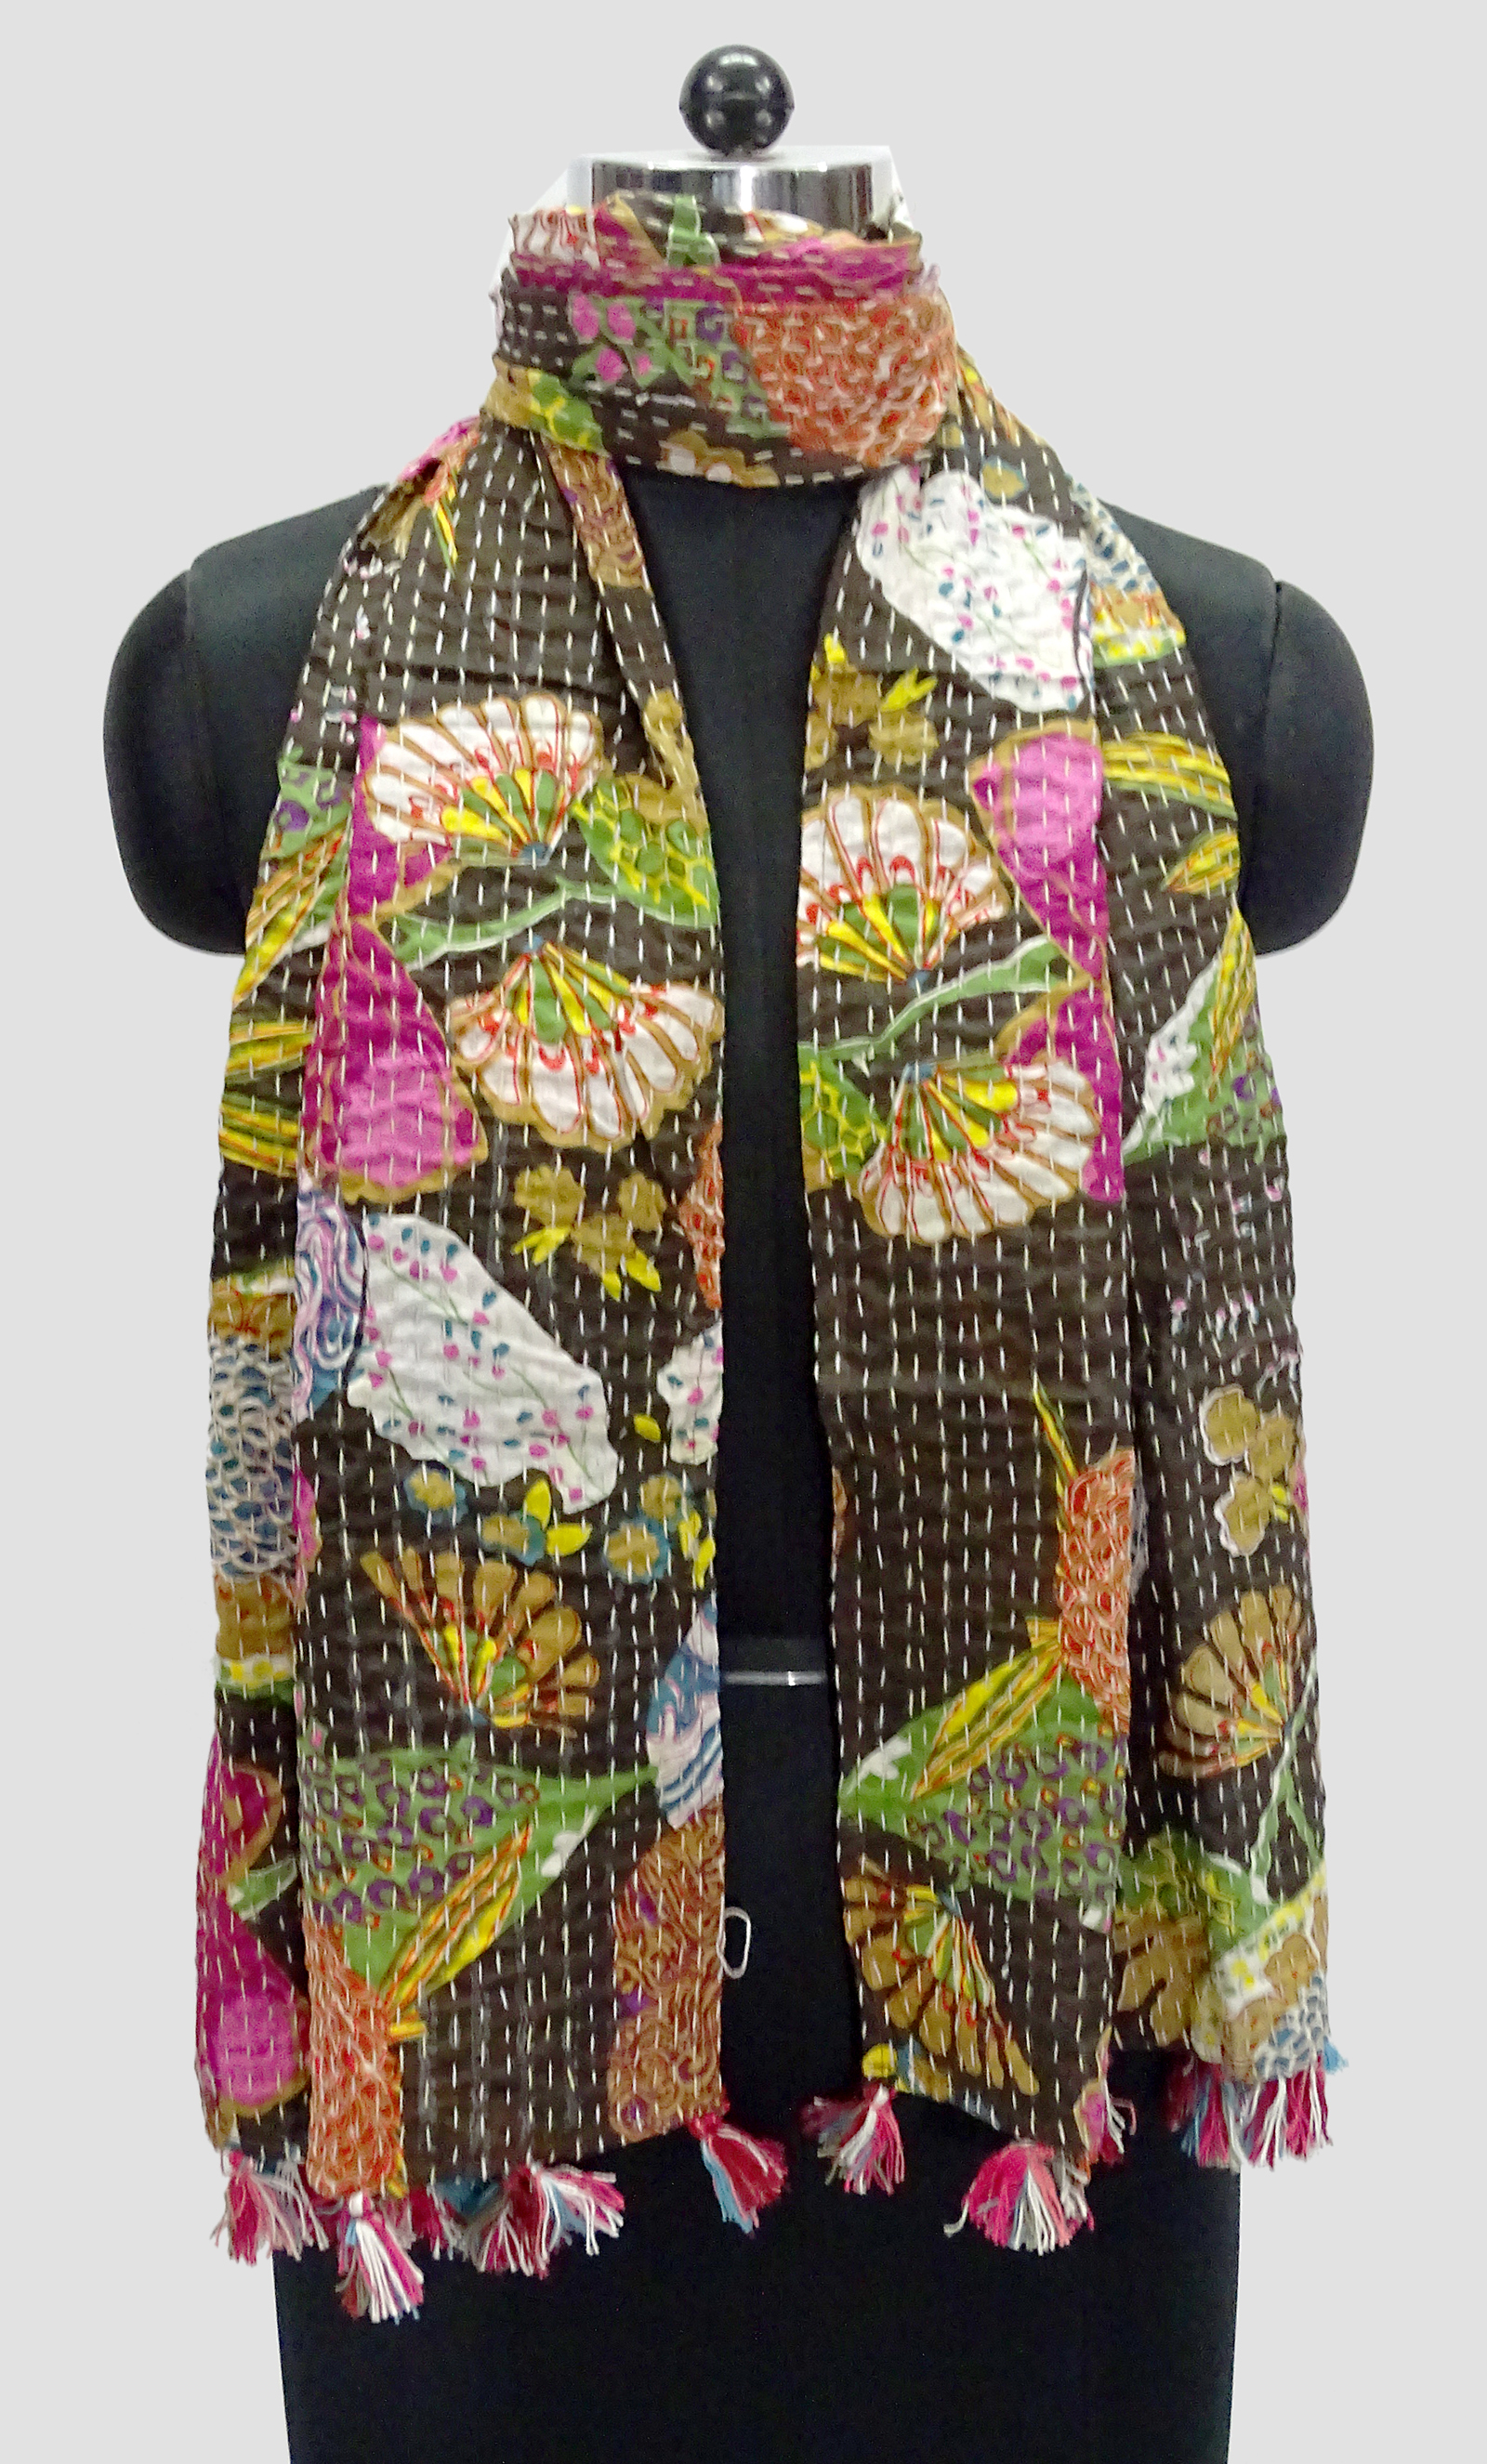 Mix Pirnted Scarves